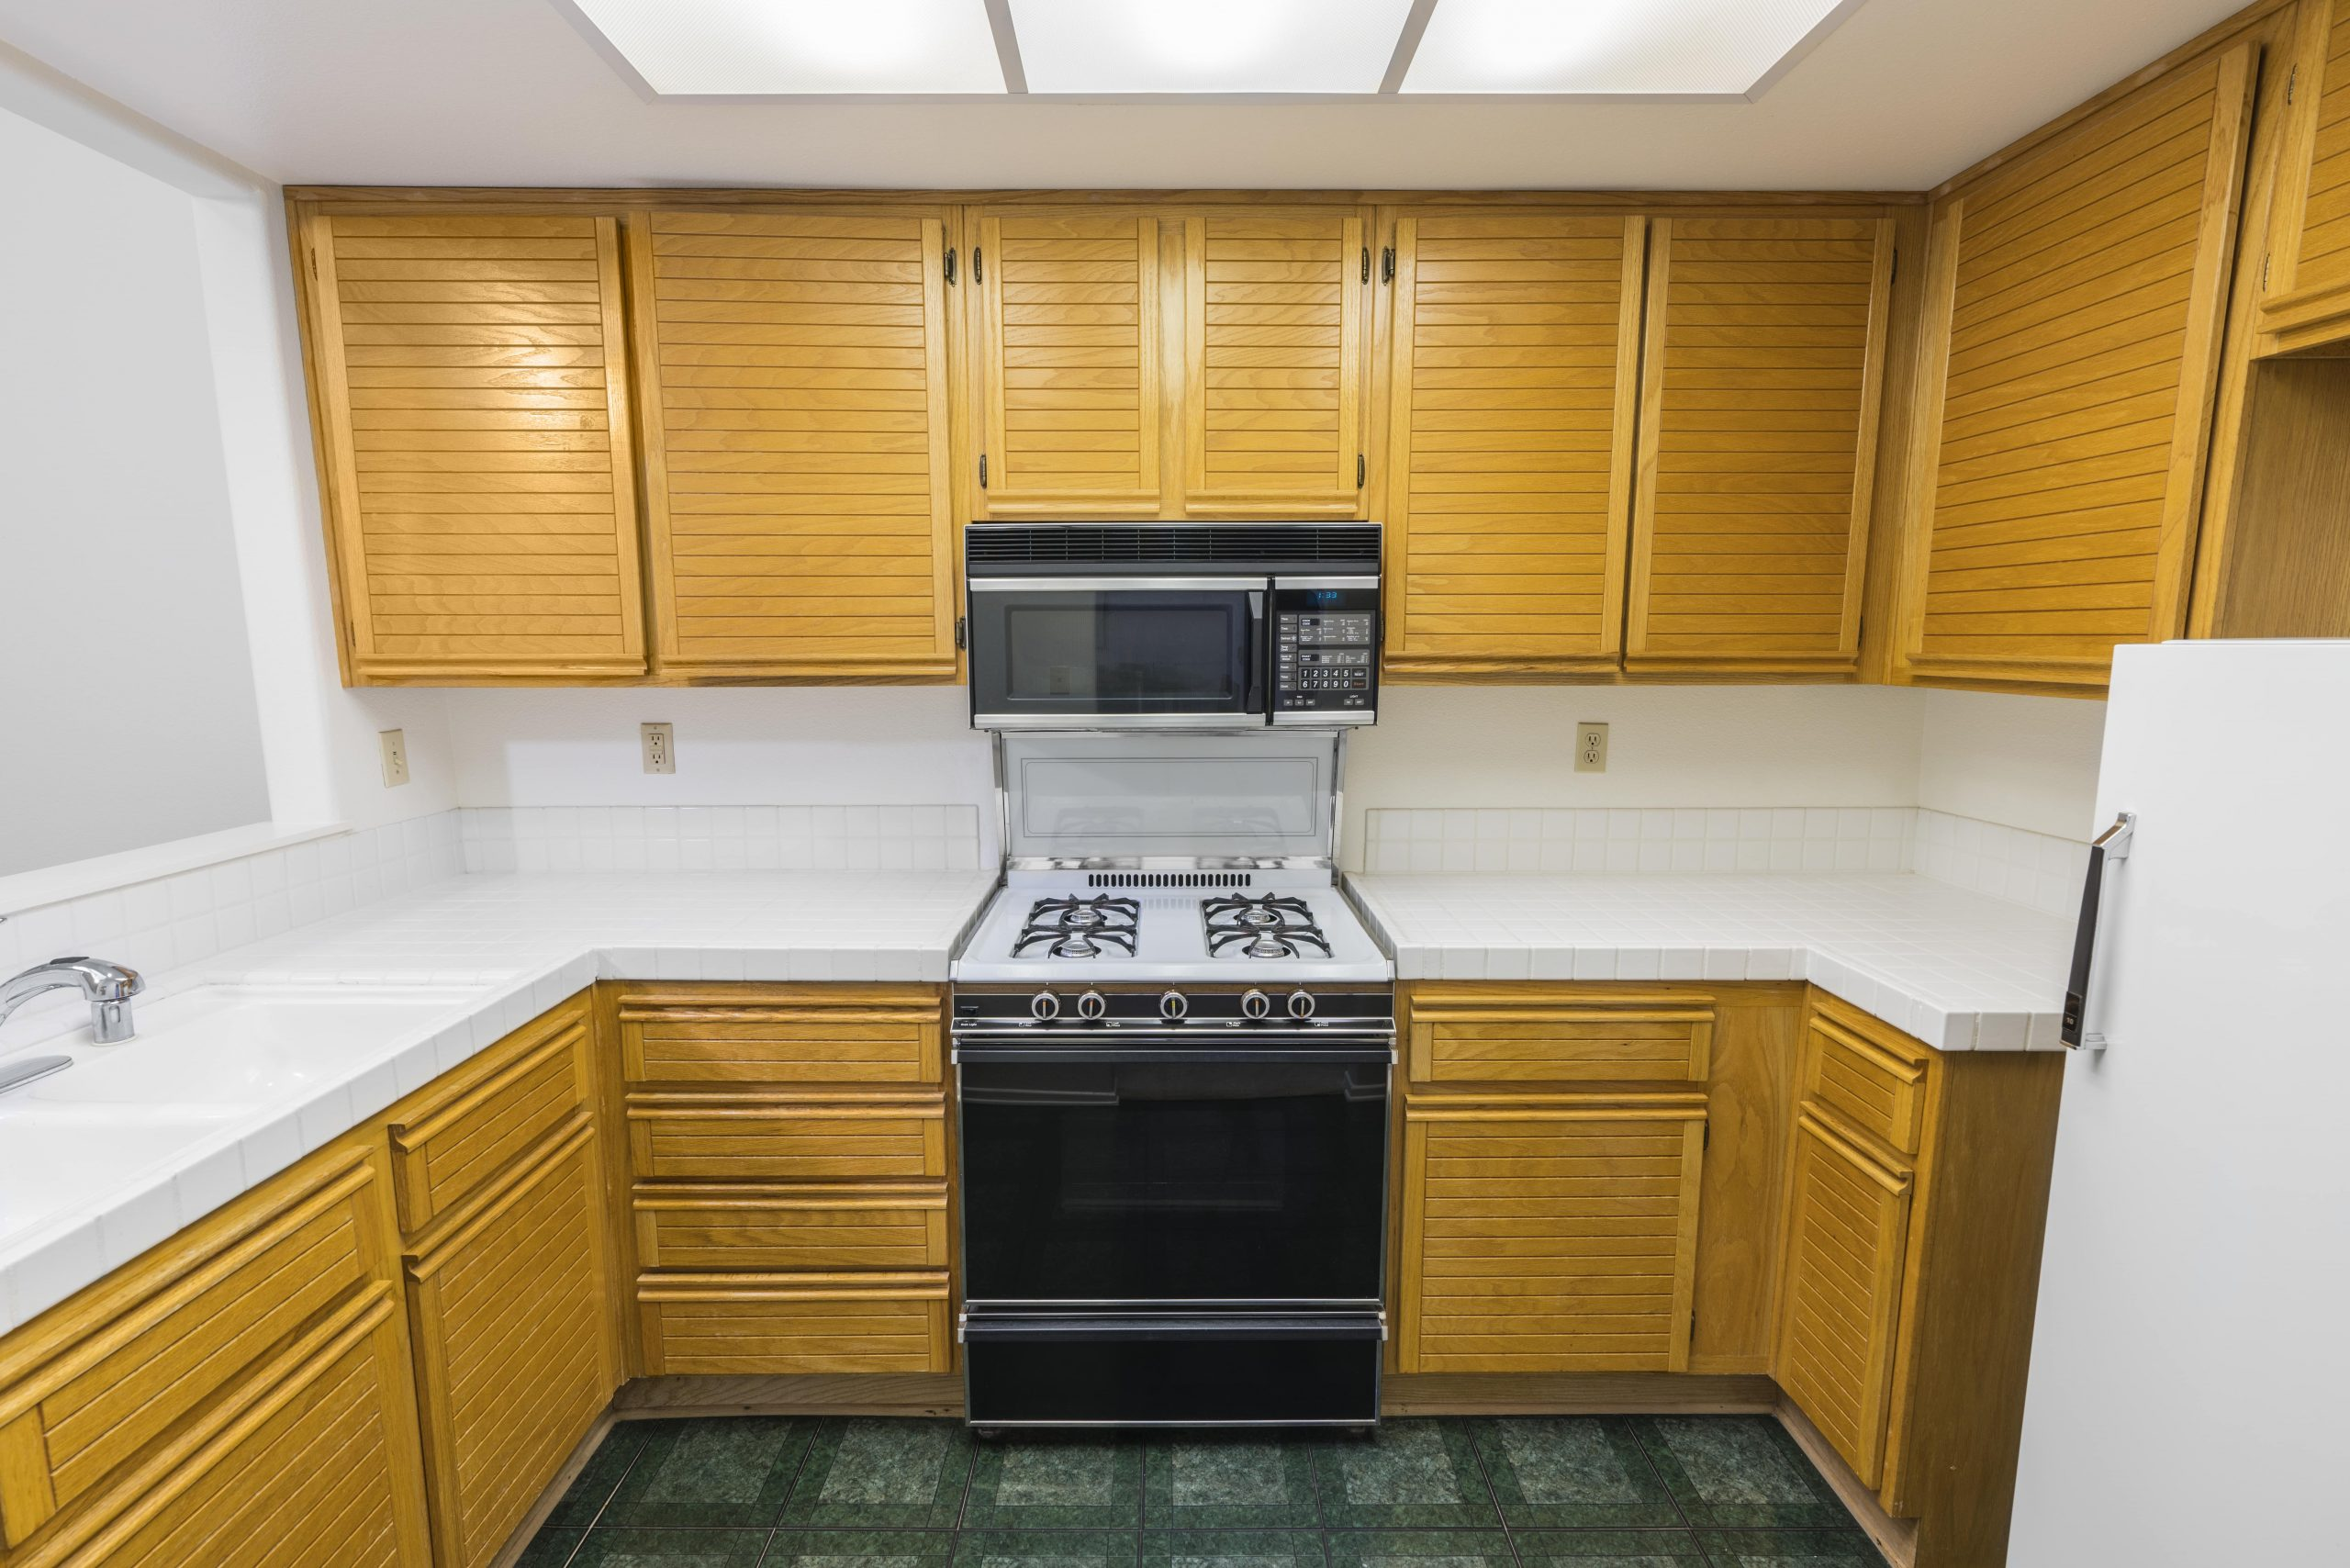 blog image of an old, outdated apartment kitchen